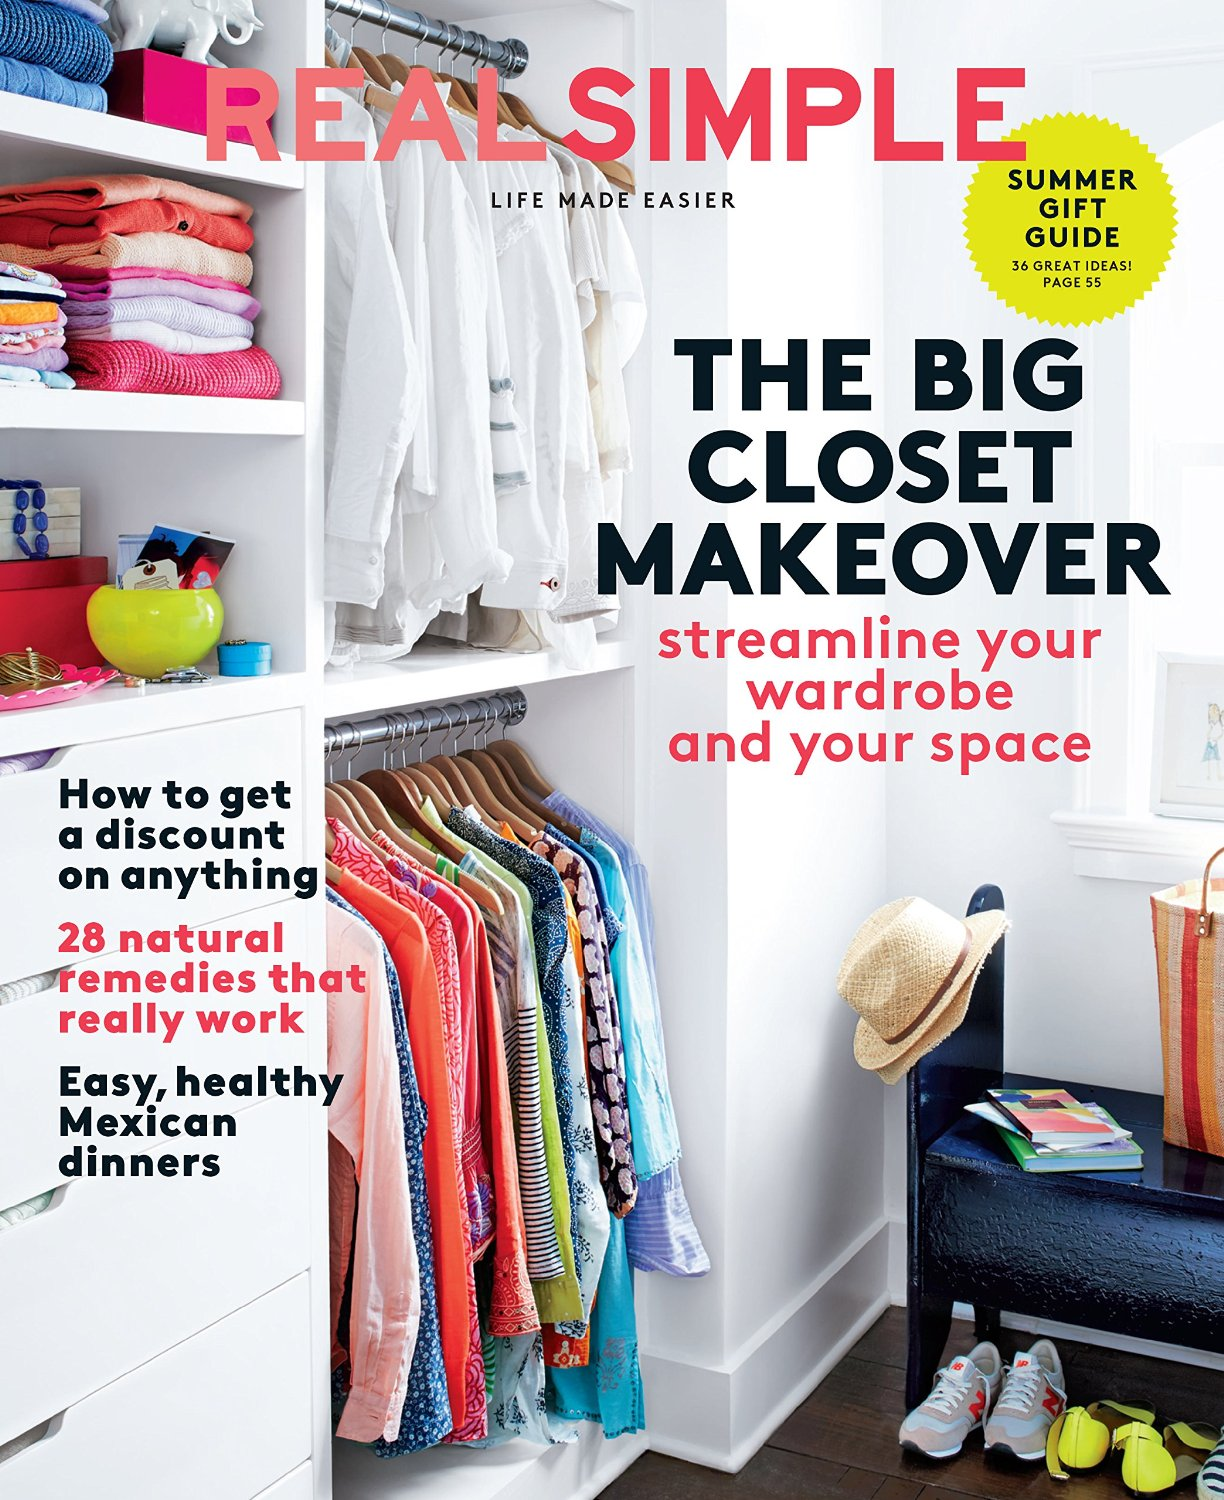 Real simple fashion guide 67